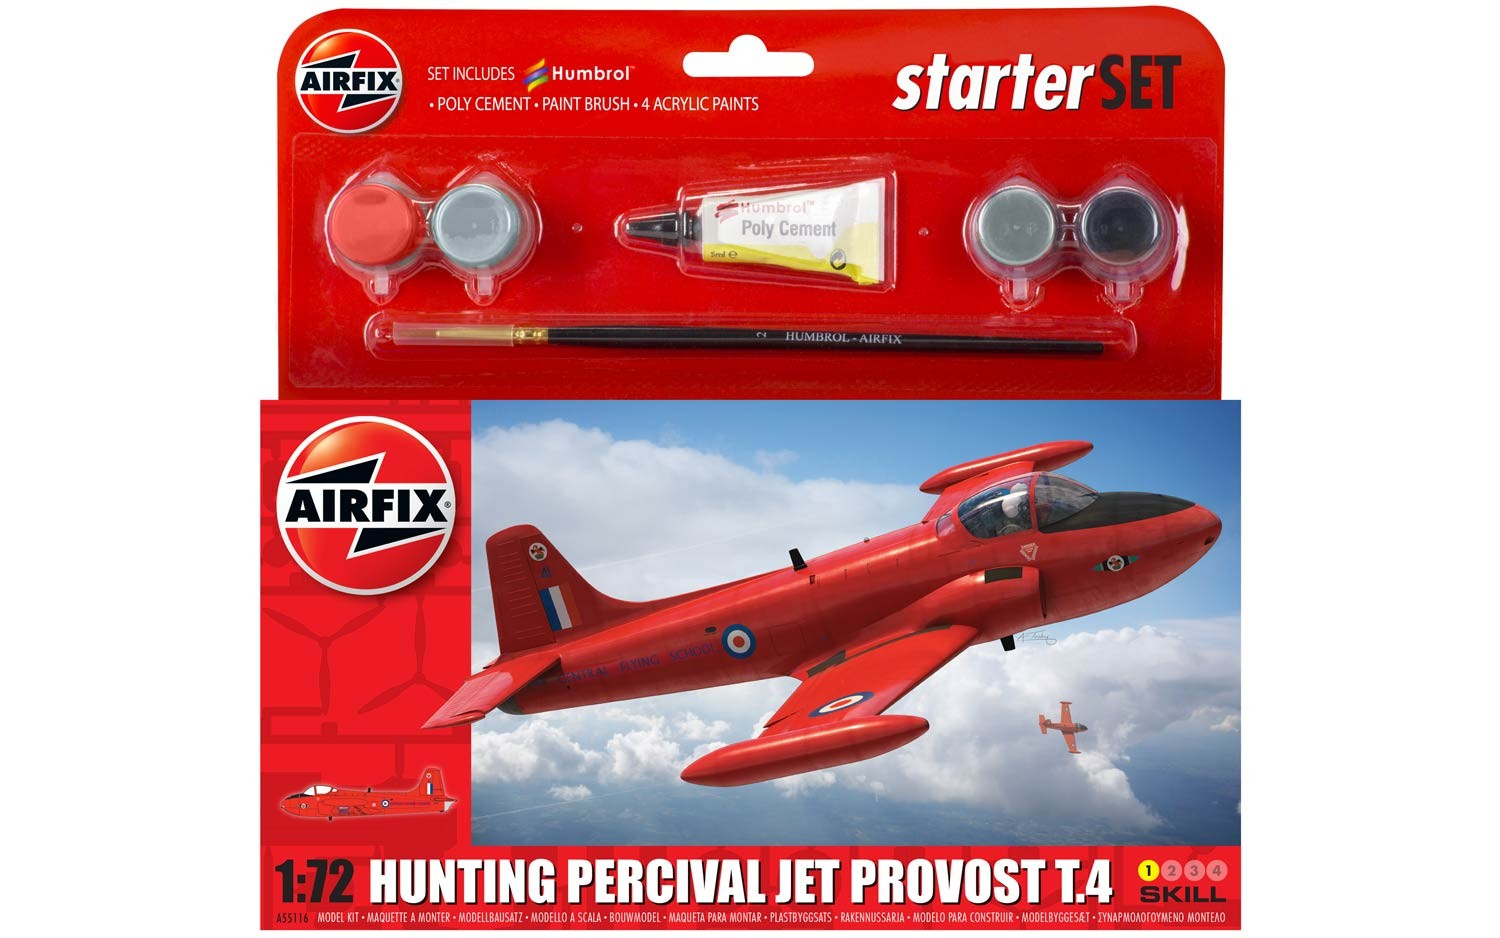 Airfix Hunting Percival Jet Provost T3 Starter Set 1:72nd scale